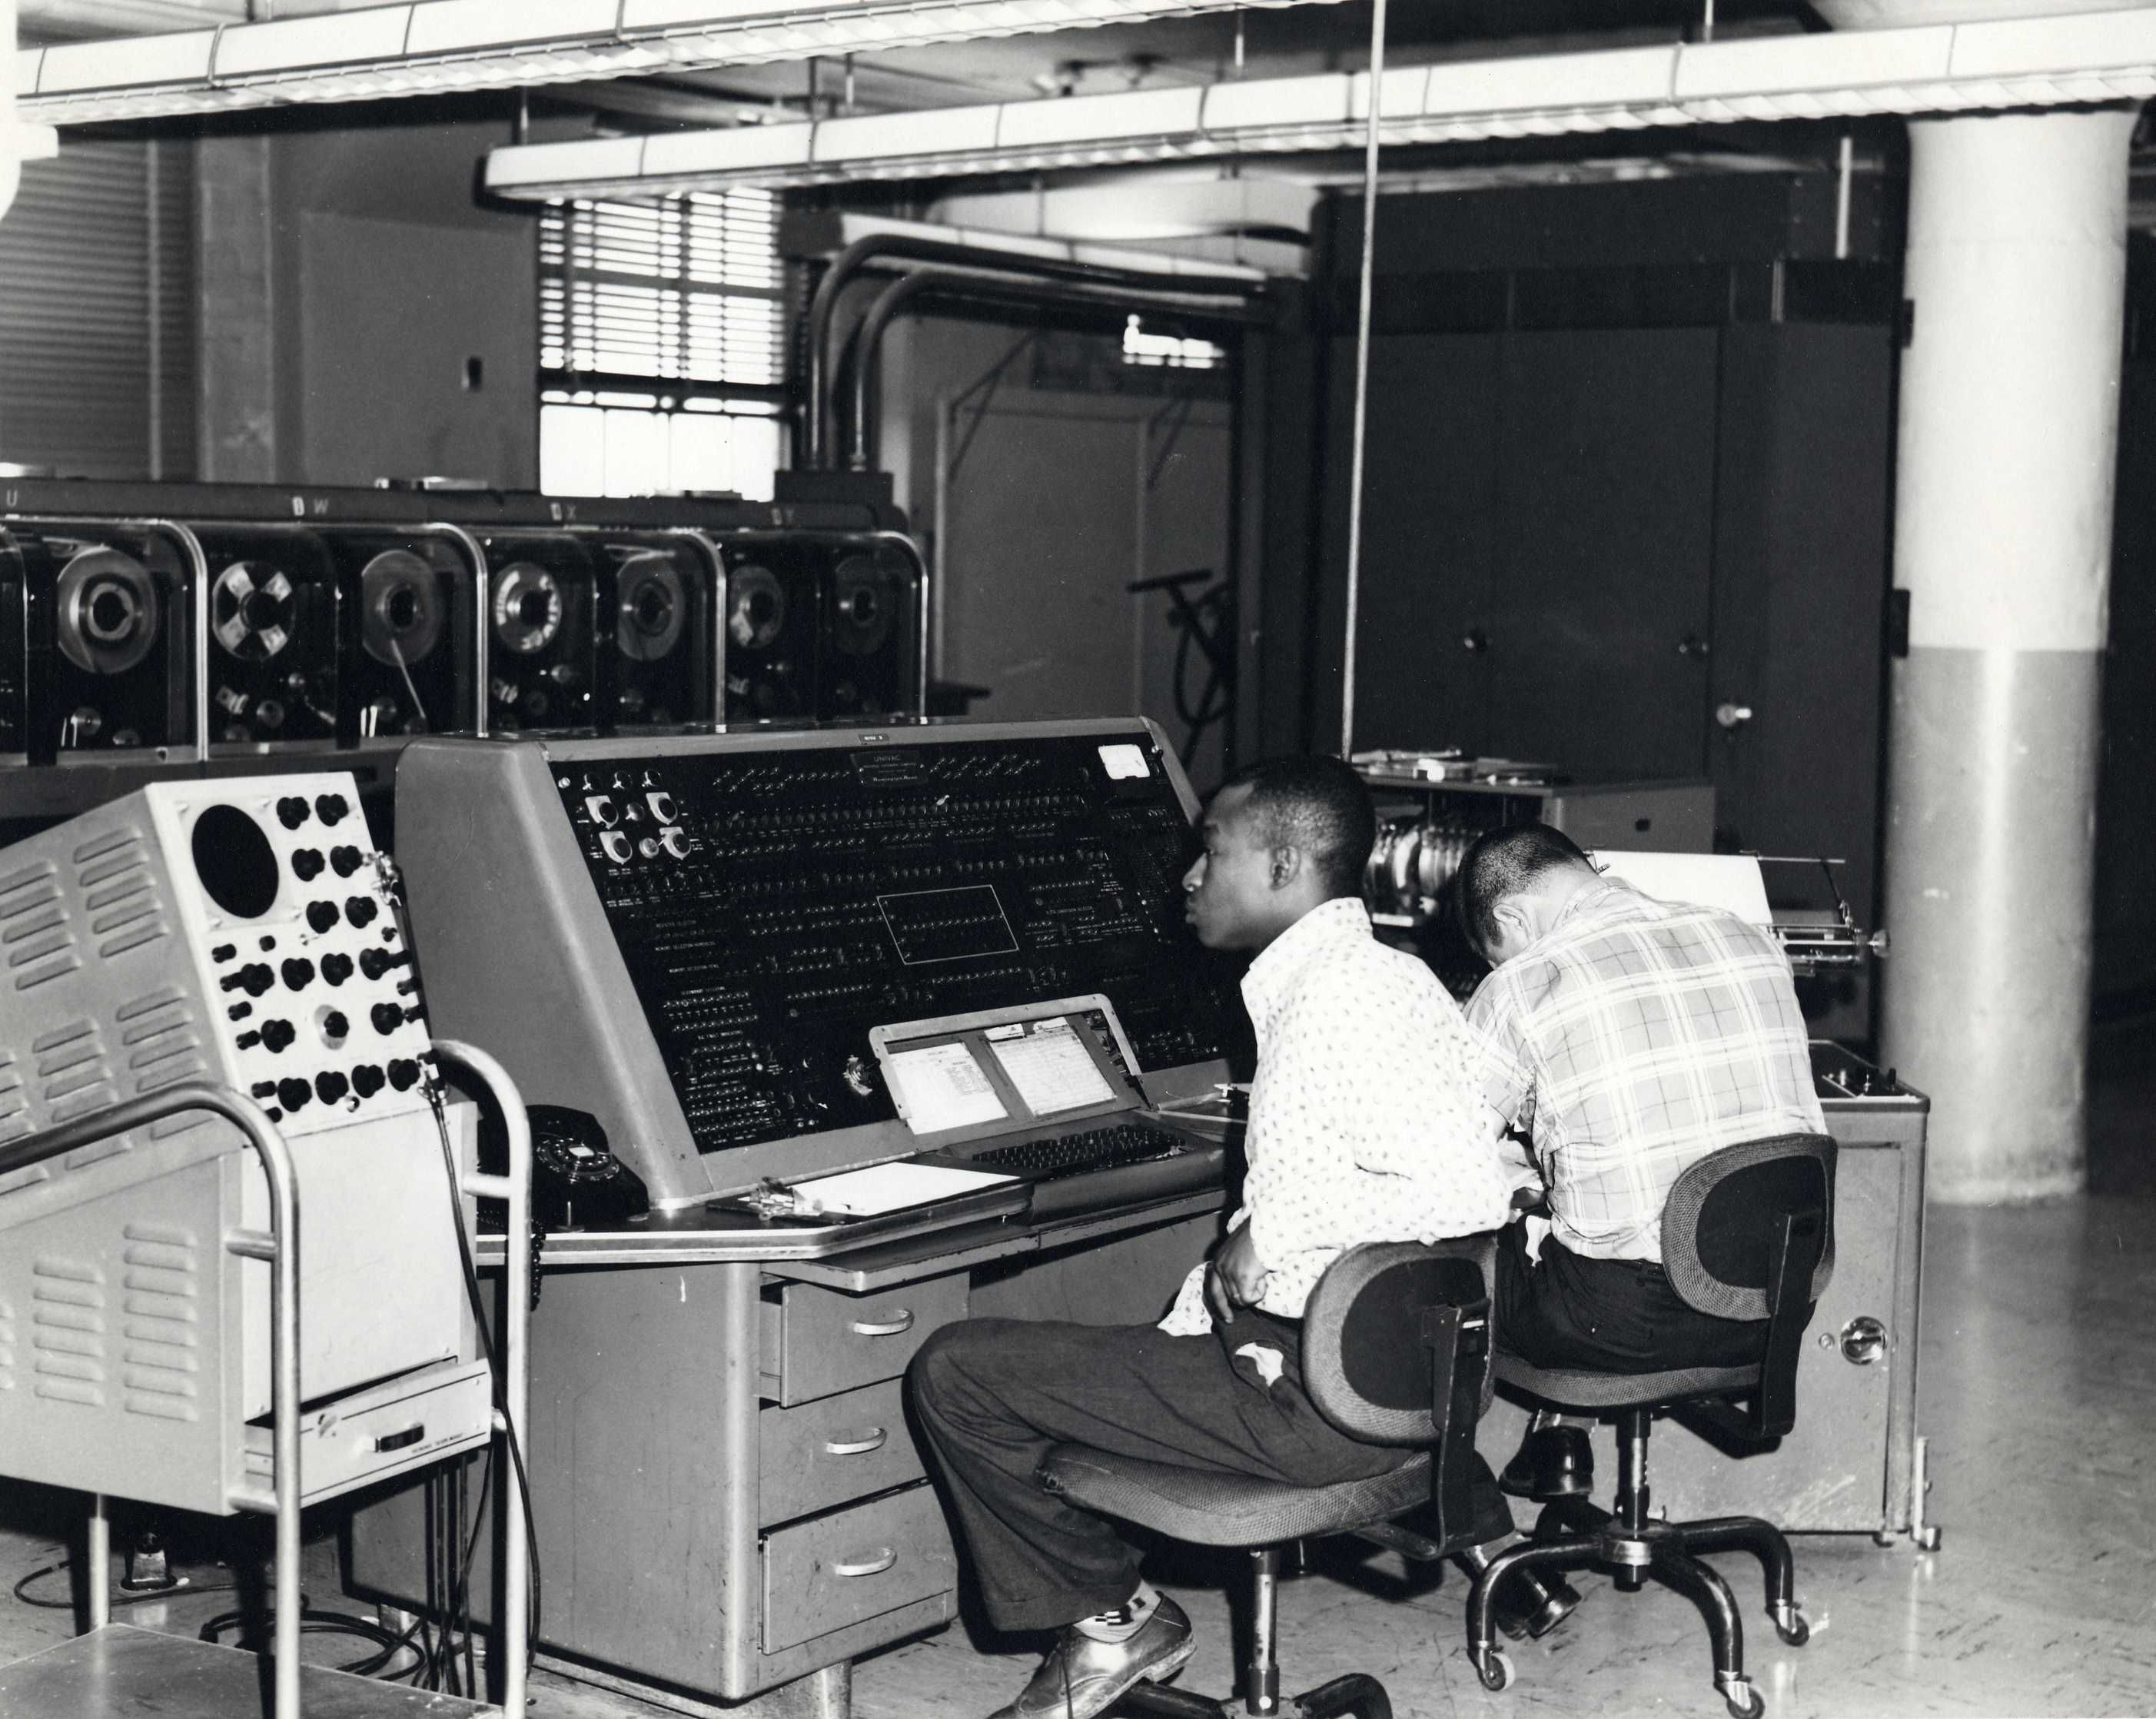 1000  images about comps on Pinterest | Ibm, Toys and 1960s